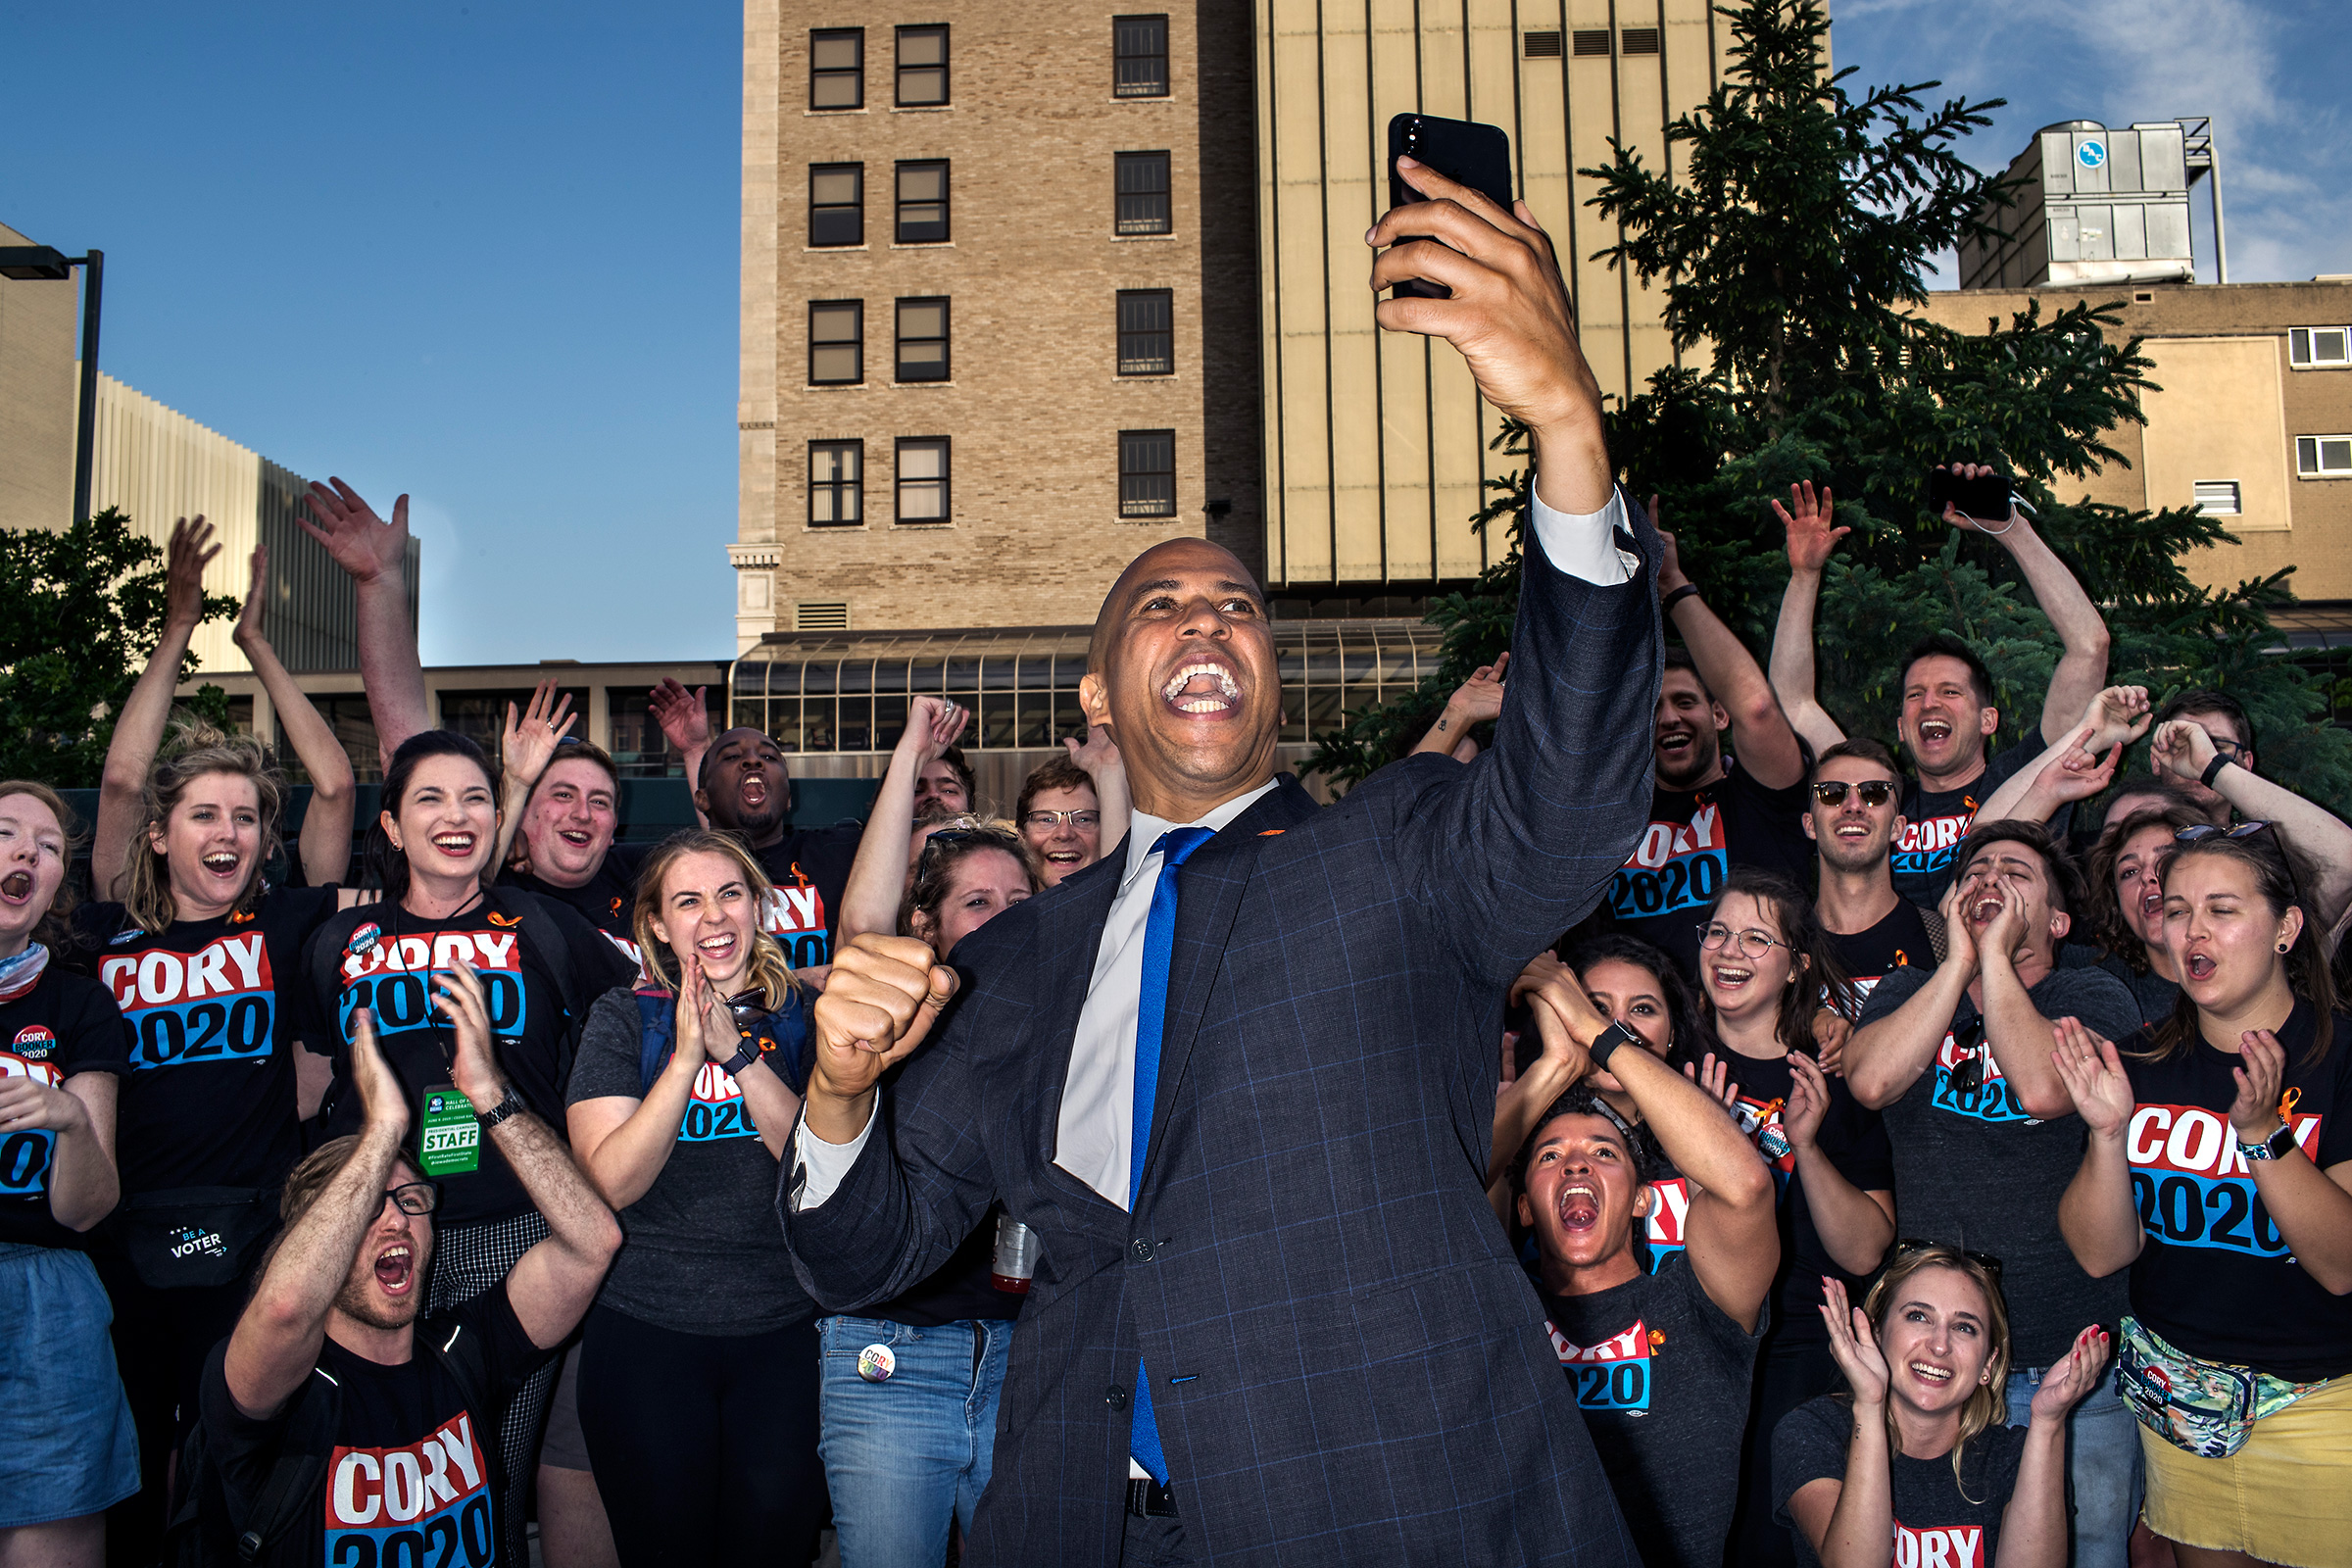 Sen. Cory Booker greets supporters in Cedar Rapids before the Iowa Democratic Party's Hall of Fame event on June 9. July 29 issue.